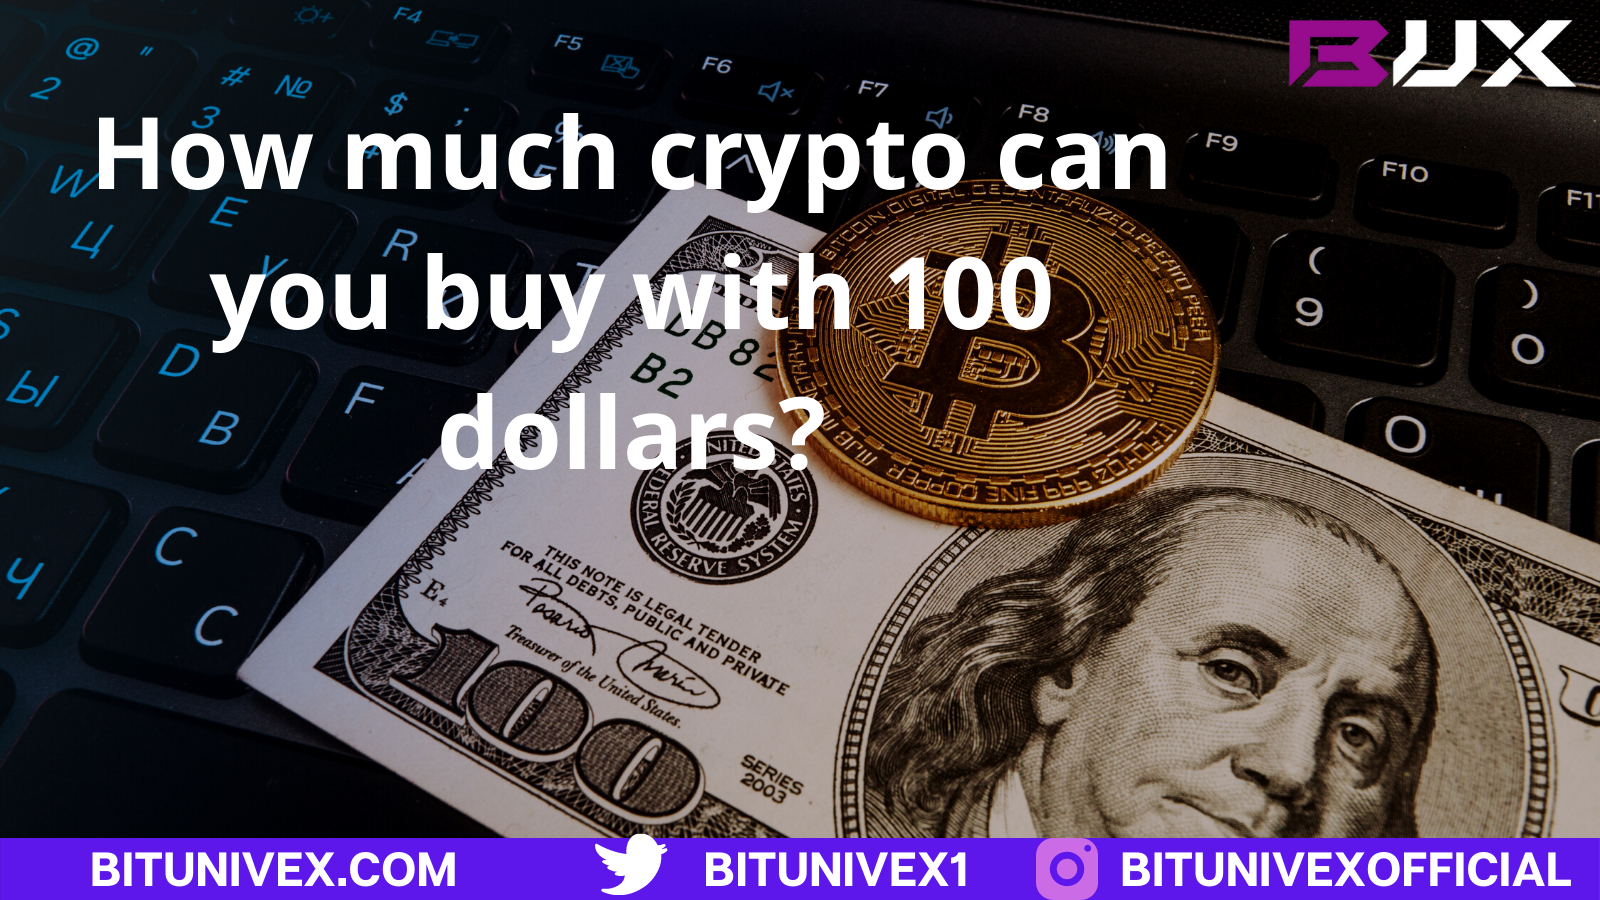 Invest in crypto with 100 dollars